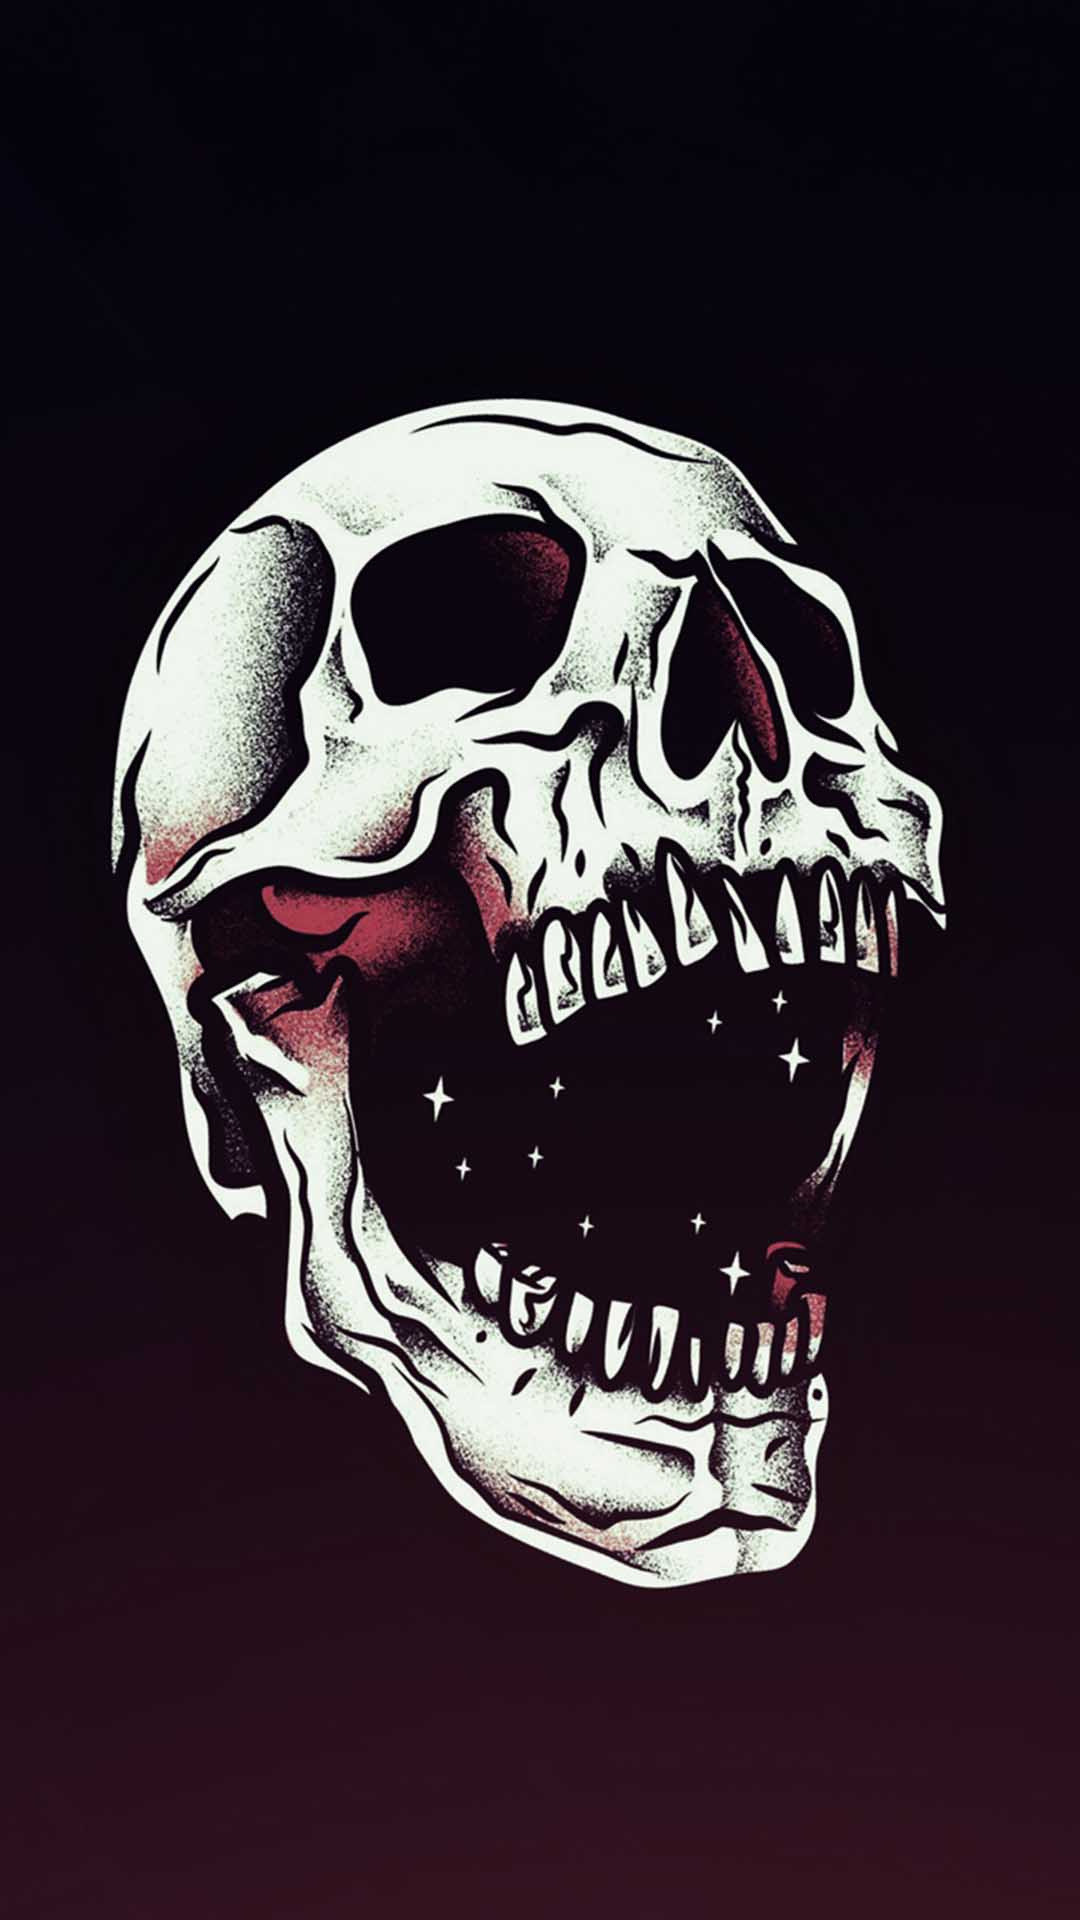 Skull Wallpaper for iPhone X 8 7 6 Free Download on